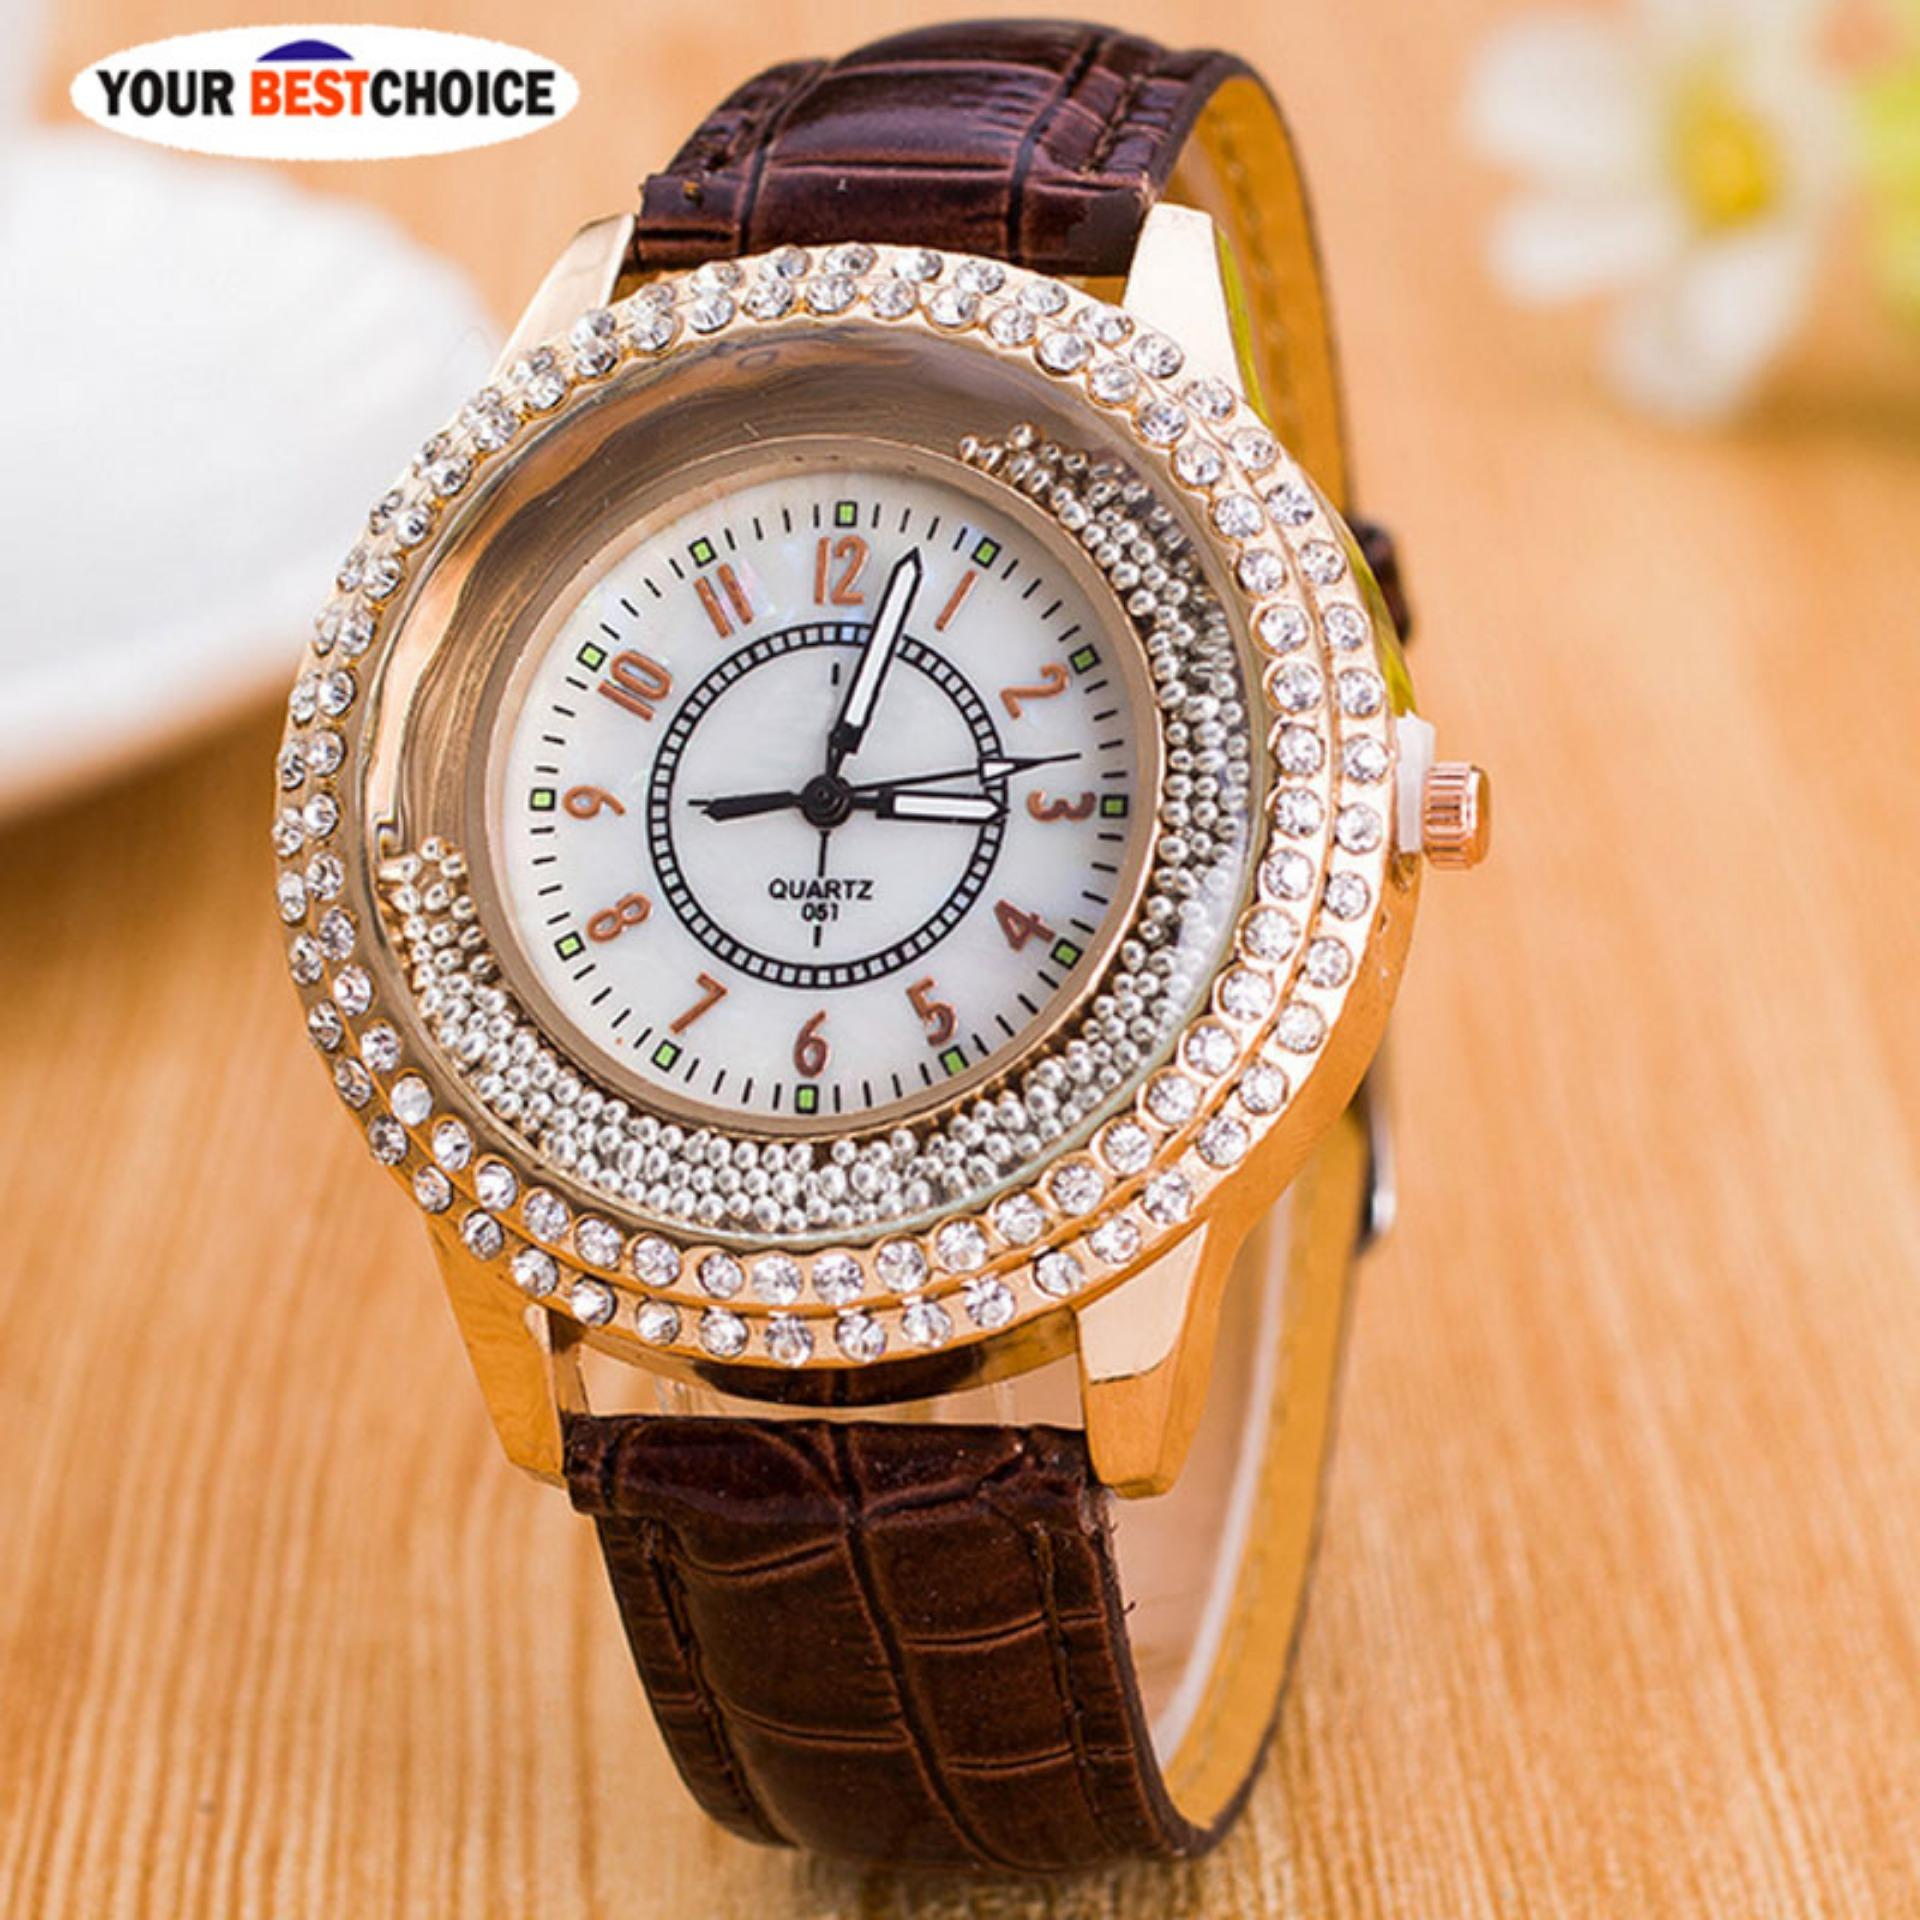 YBC Fashion Women PU Leather Watch Berlian Imitasi Kuarsa Jam Tangan Hadiah- Intl